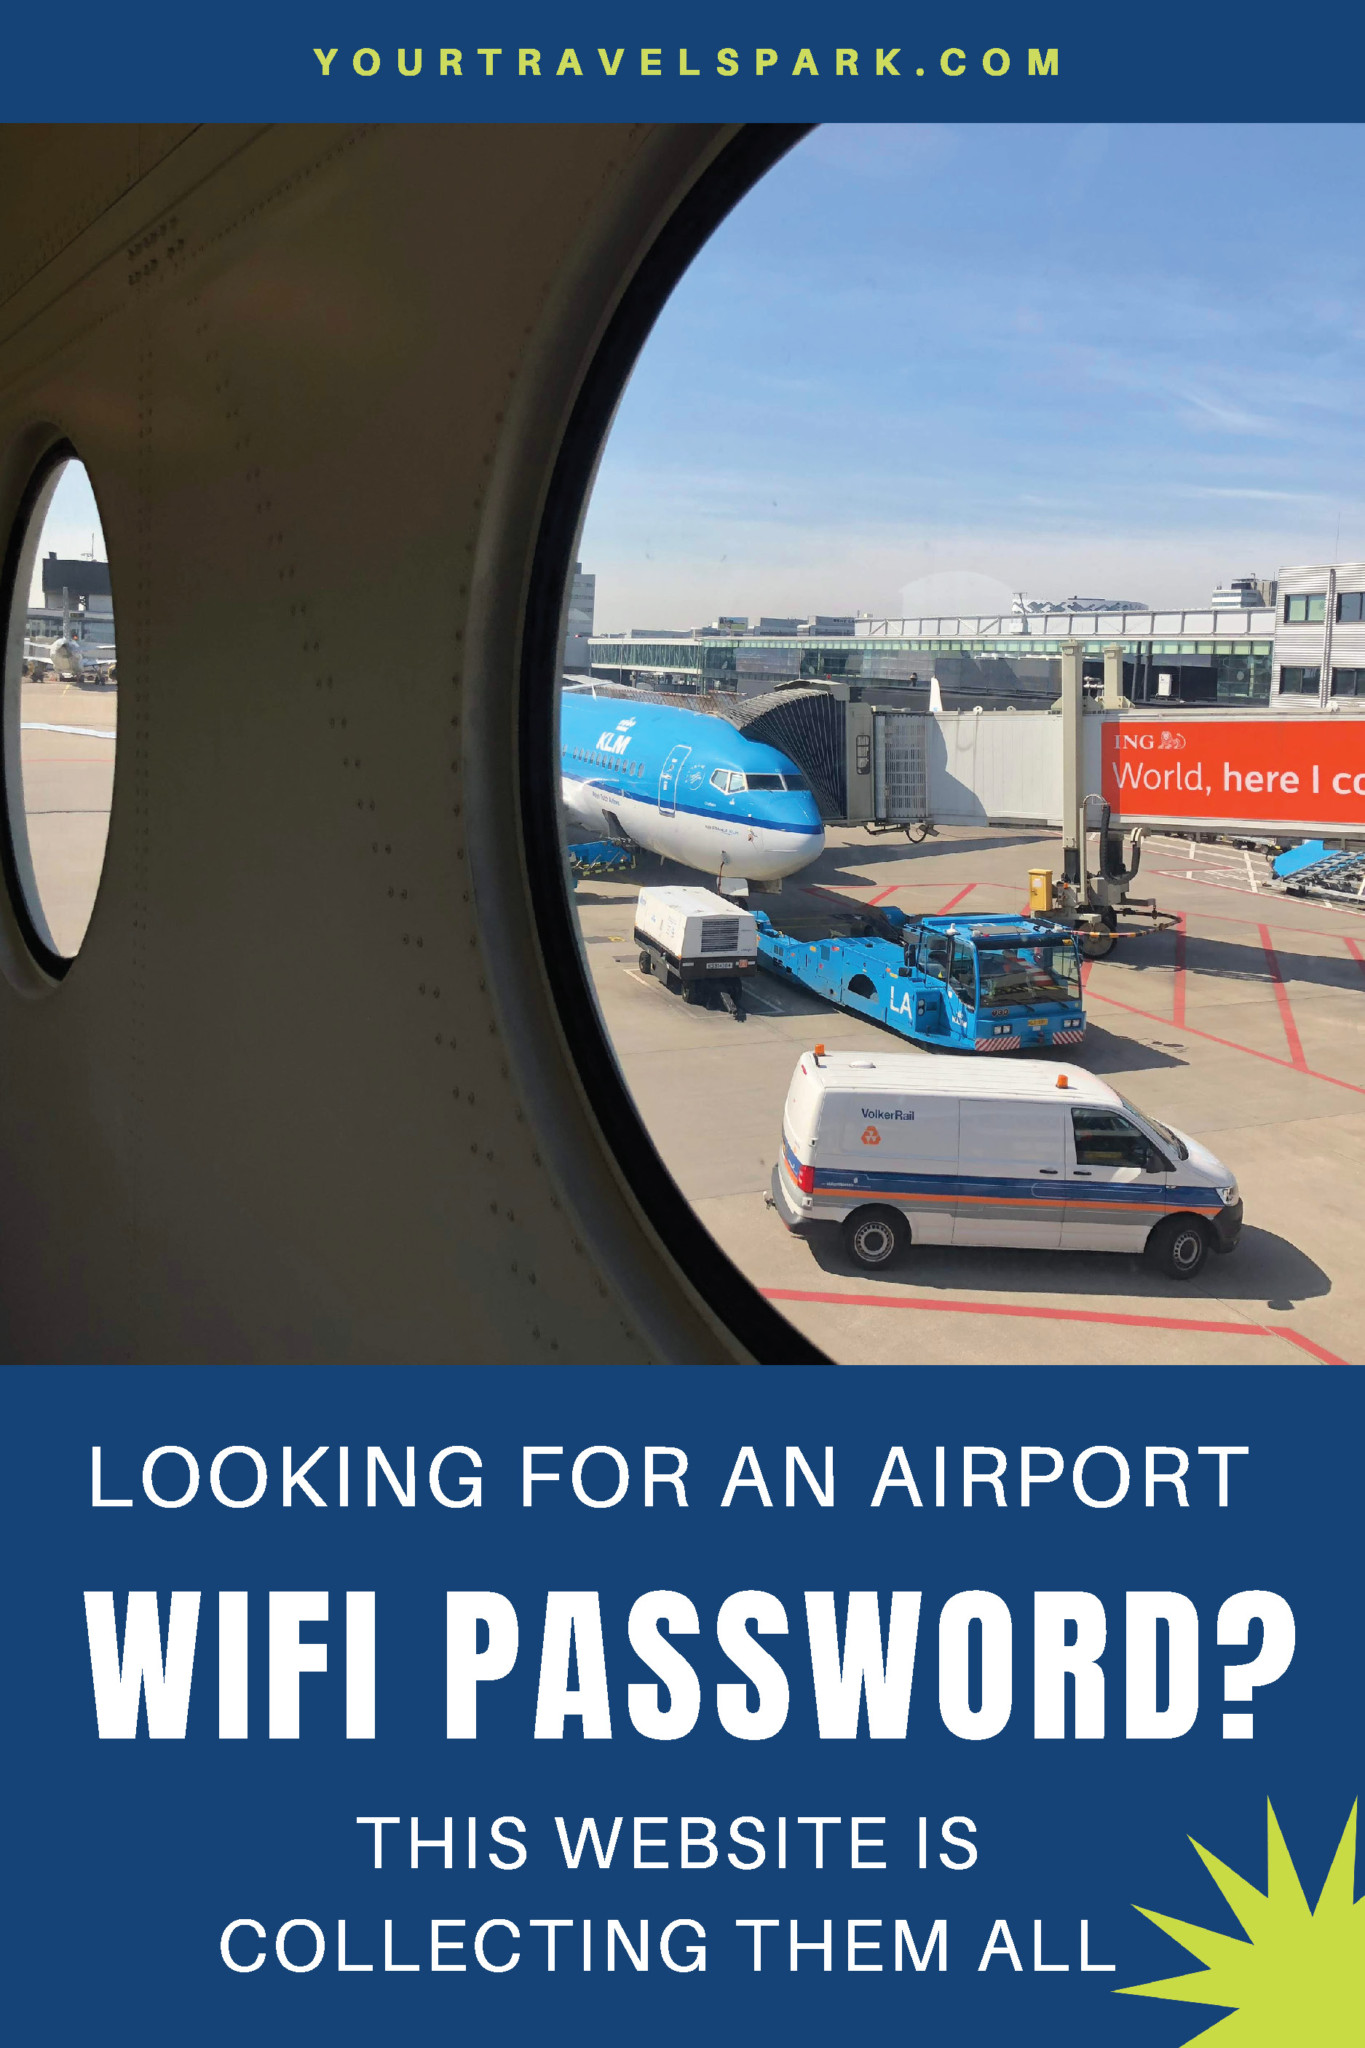 Looking for an airport wifi password? This website is collecting them all (and wants you to add to it). #airportwifi #wifipassword #airportwifipassword #airportinternet #airportwifipasswords